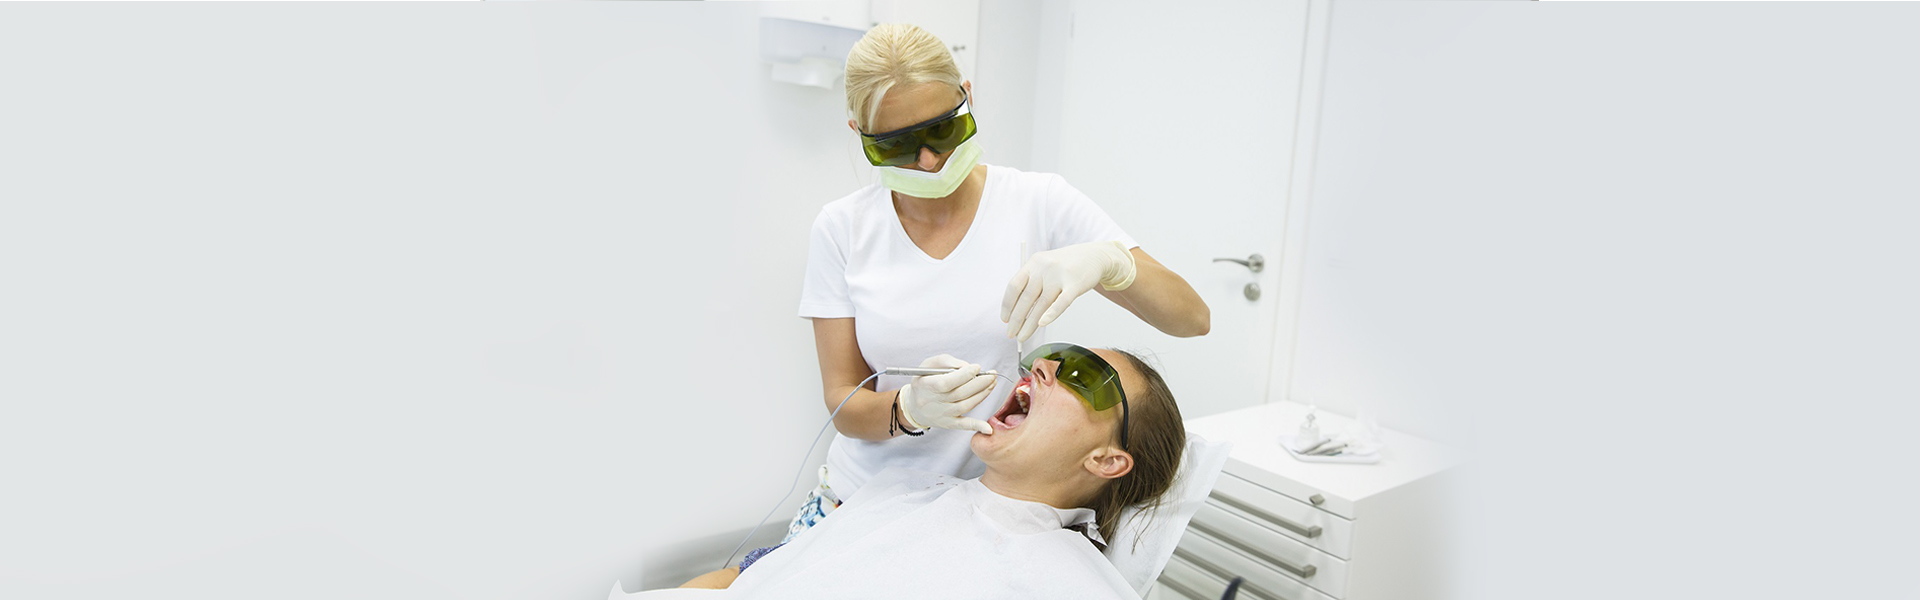 Cosmetic Surgery 101: How Periodontal Treatments Can Improve Your Smile.